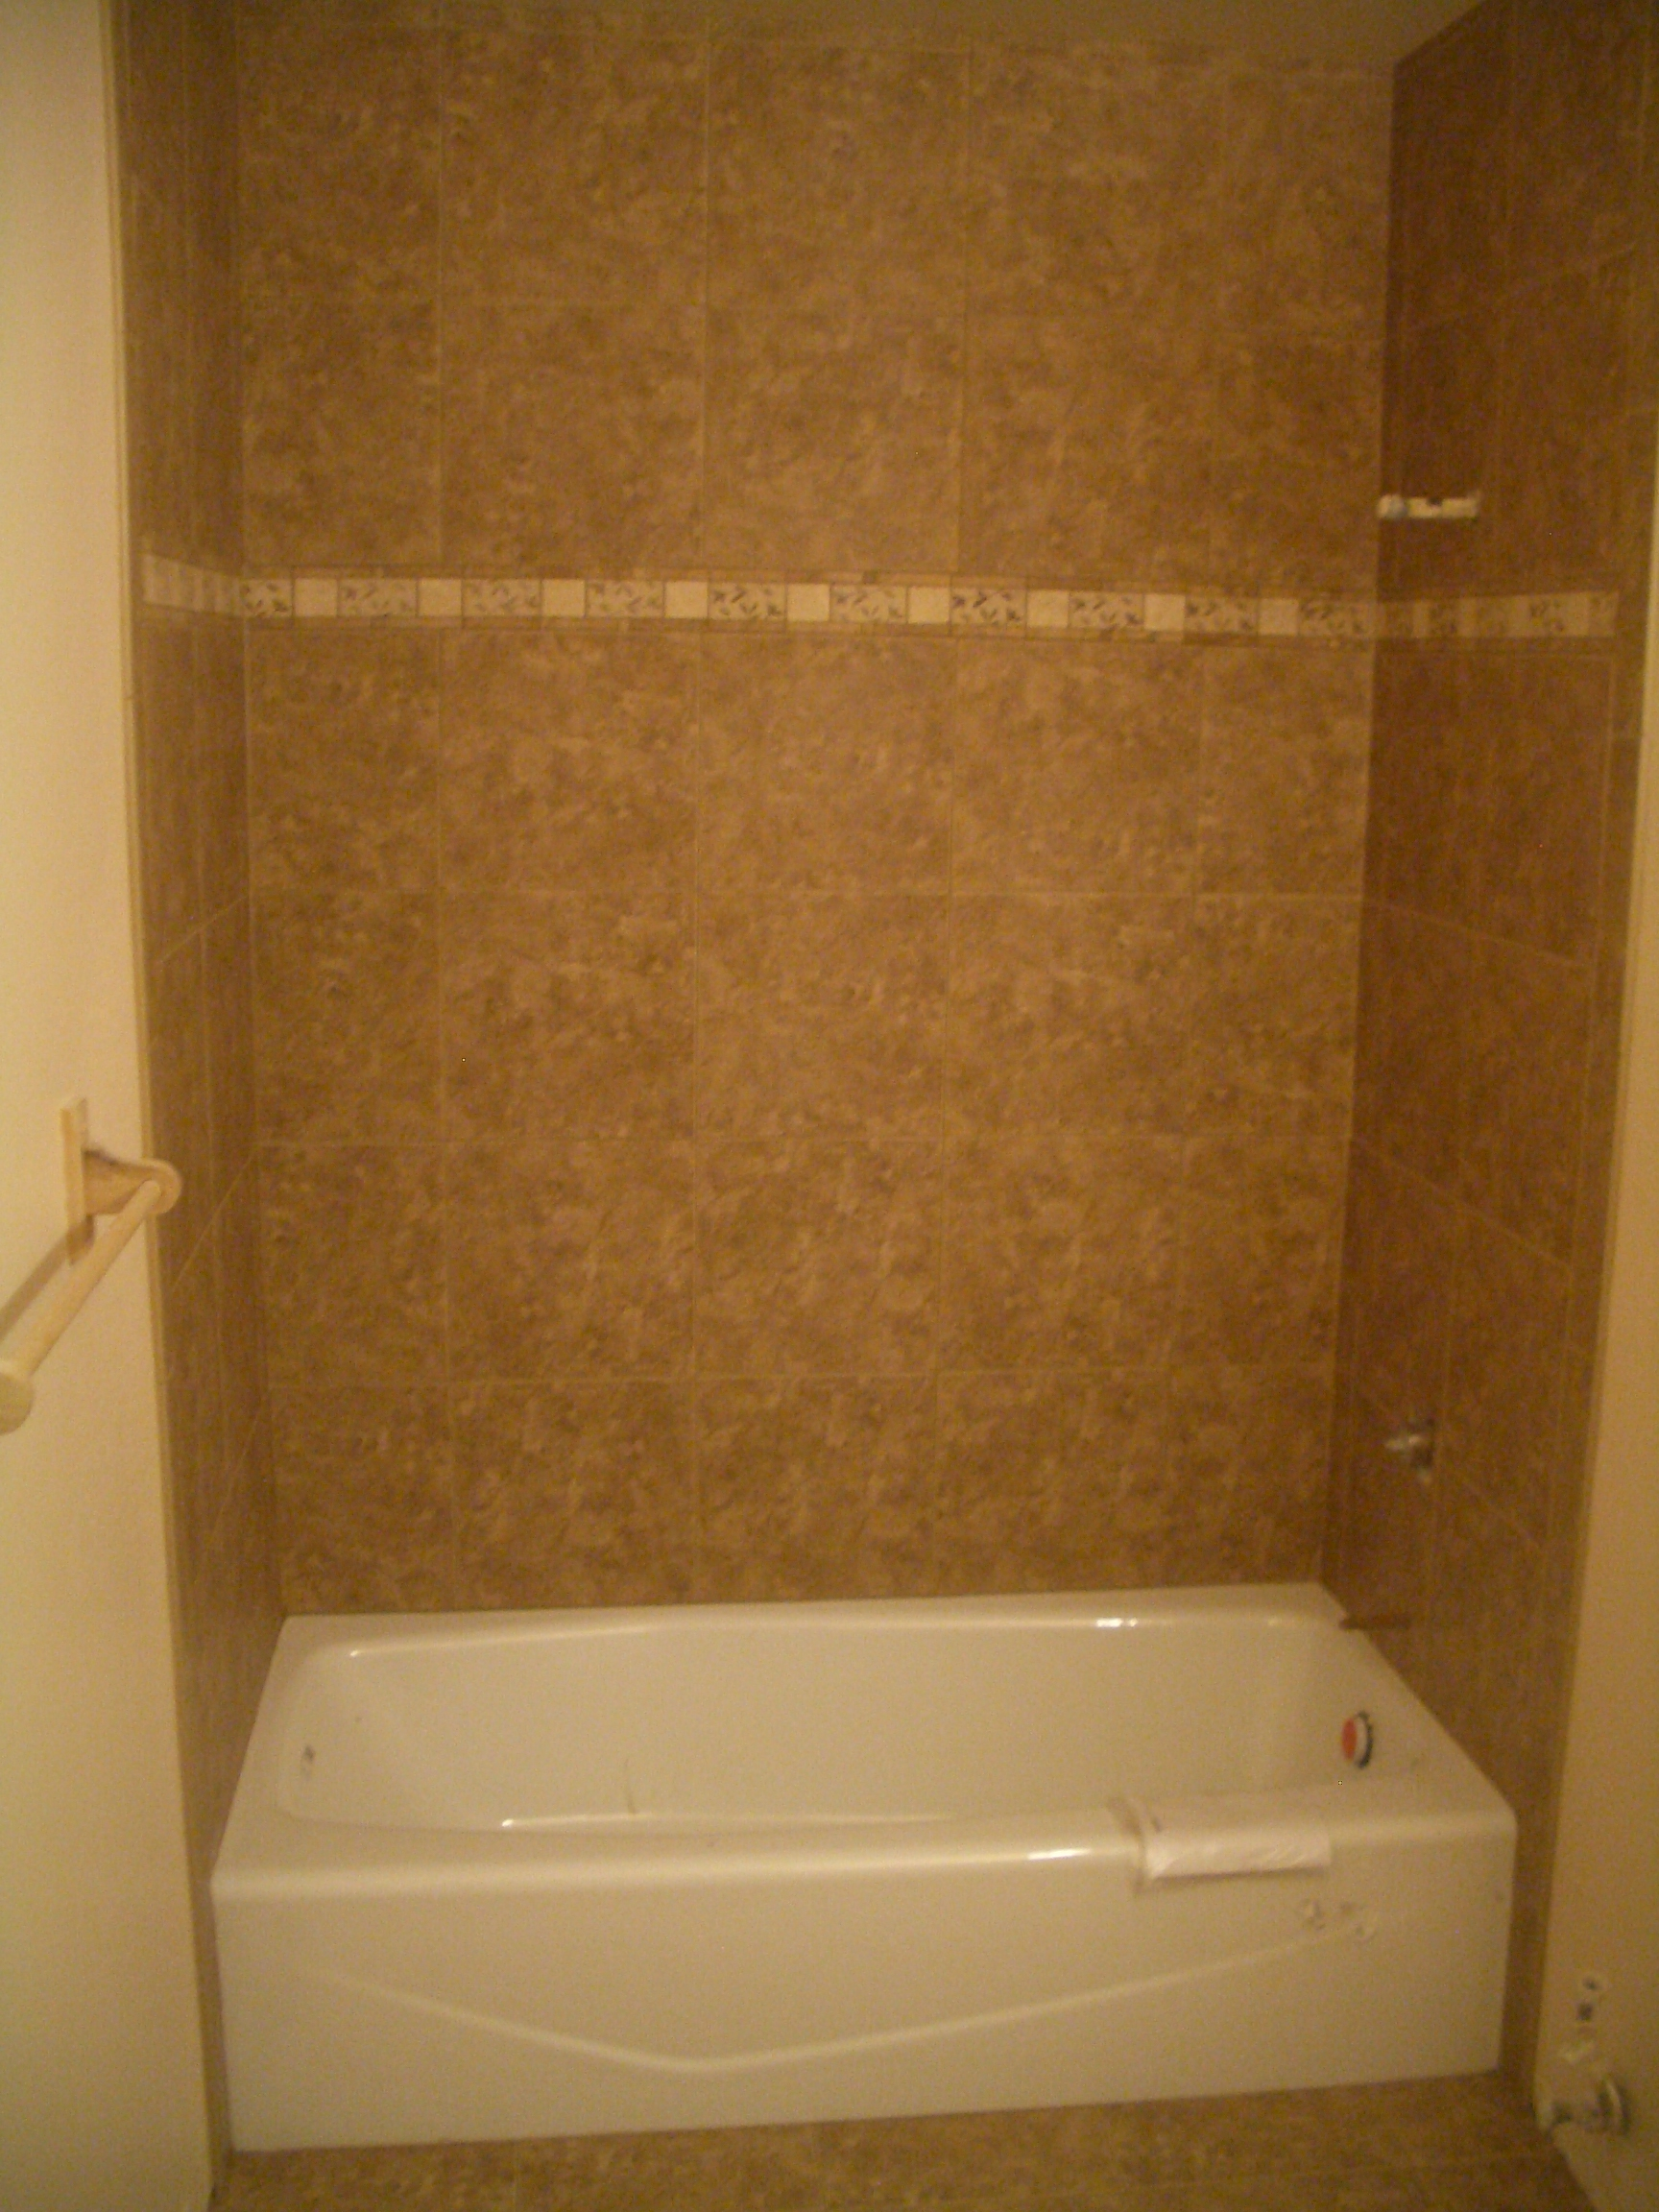 TRAVERTINE TILE IN A BATHROOM BATHROOM TILE